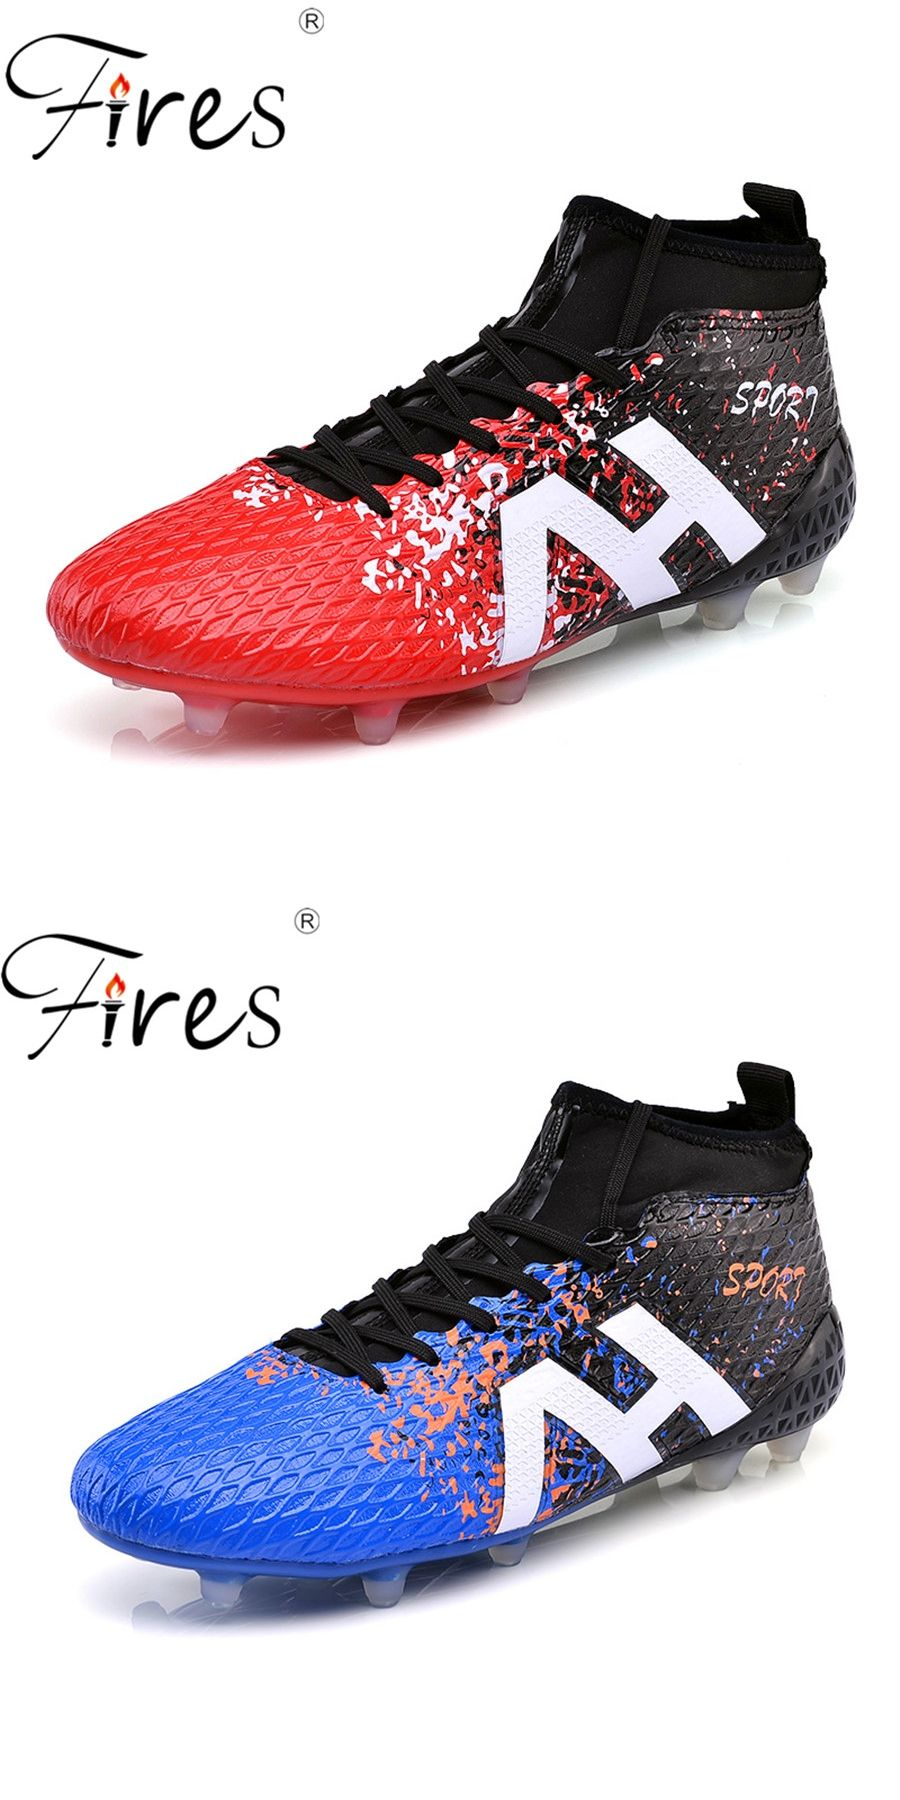 Fires Long Spikes Soccer Shoes Boots For Men Sports Shoes Outdoor Boys  Football Shoes2017 Men High Ankle Original Football Boot 15e4f818fe2